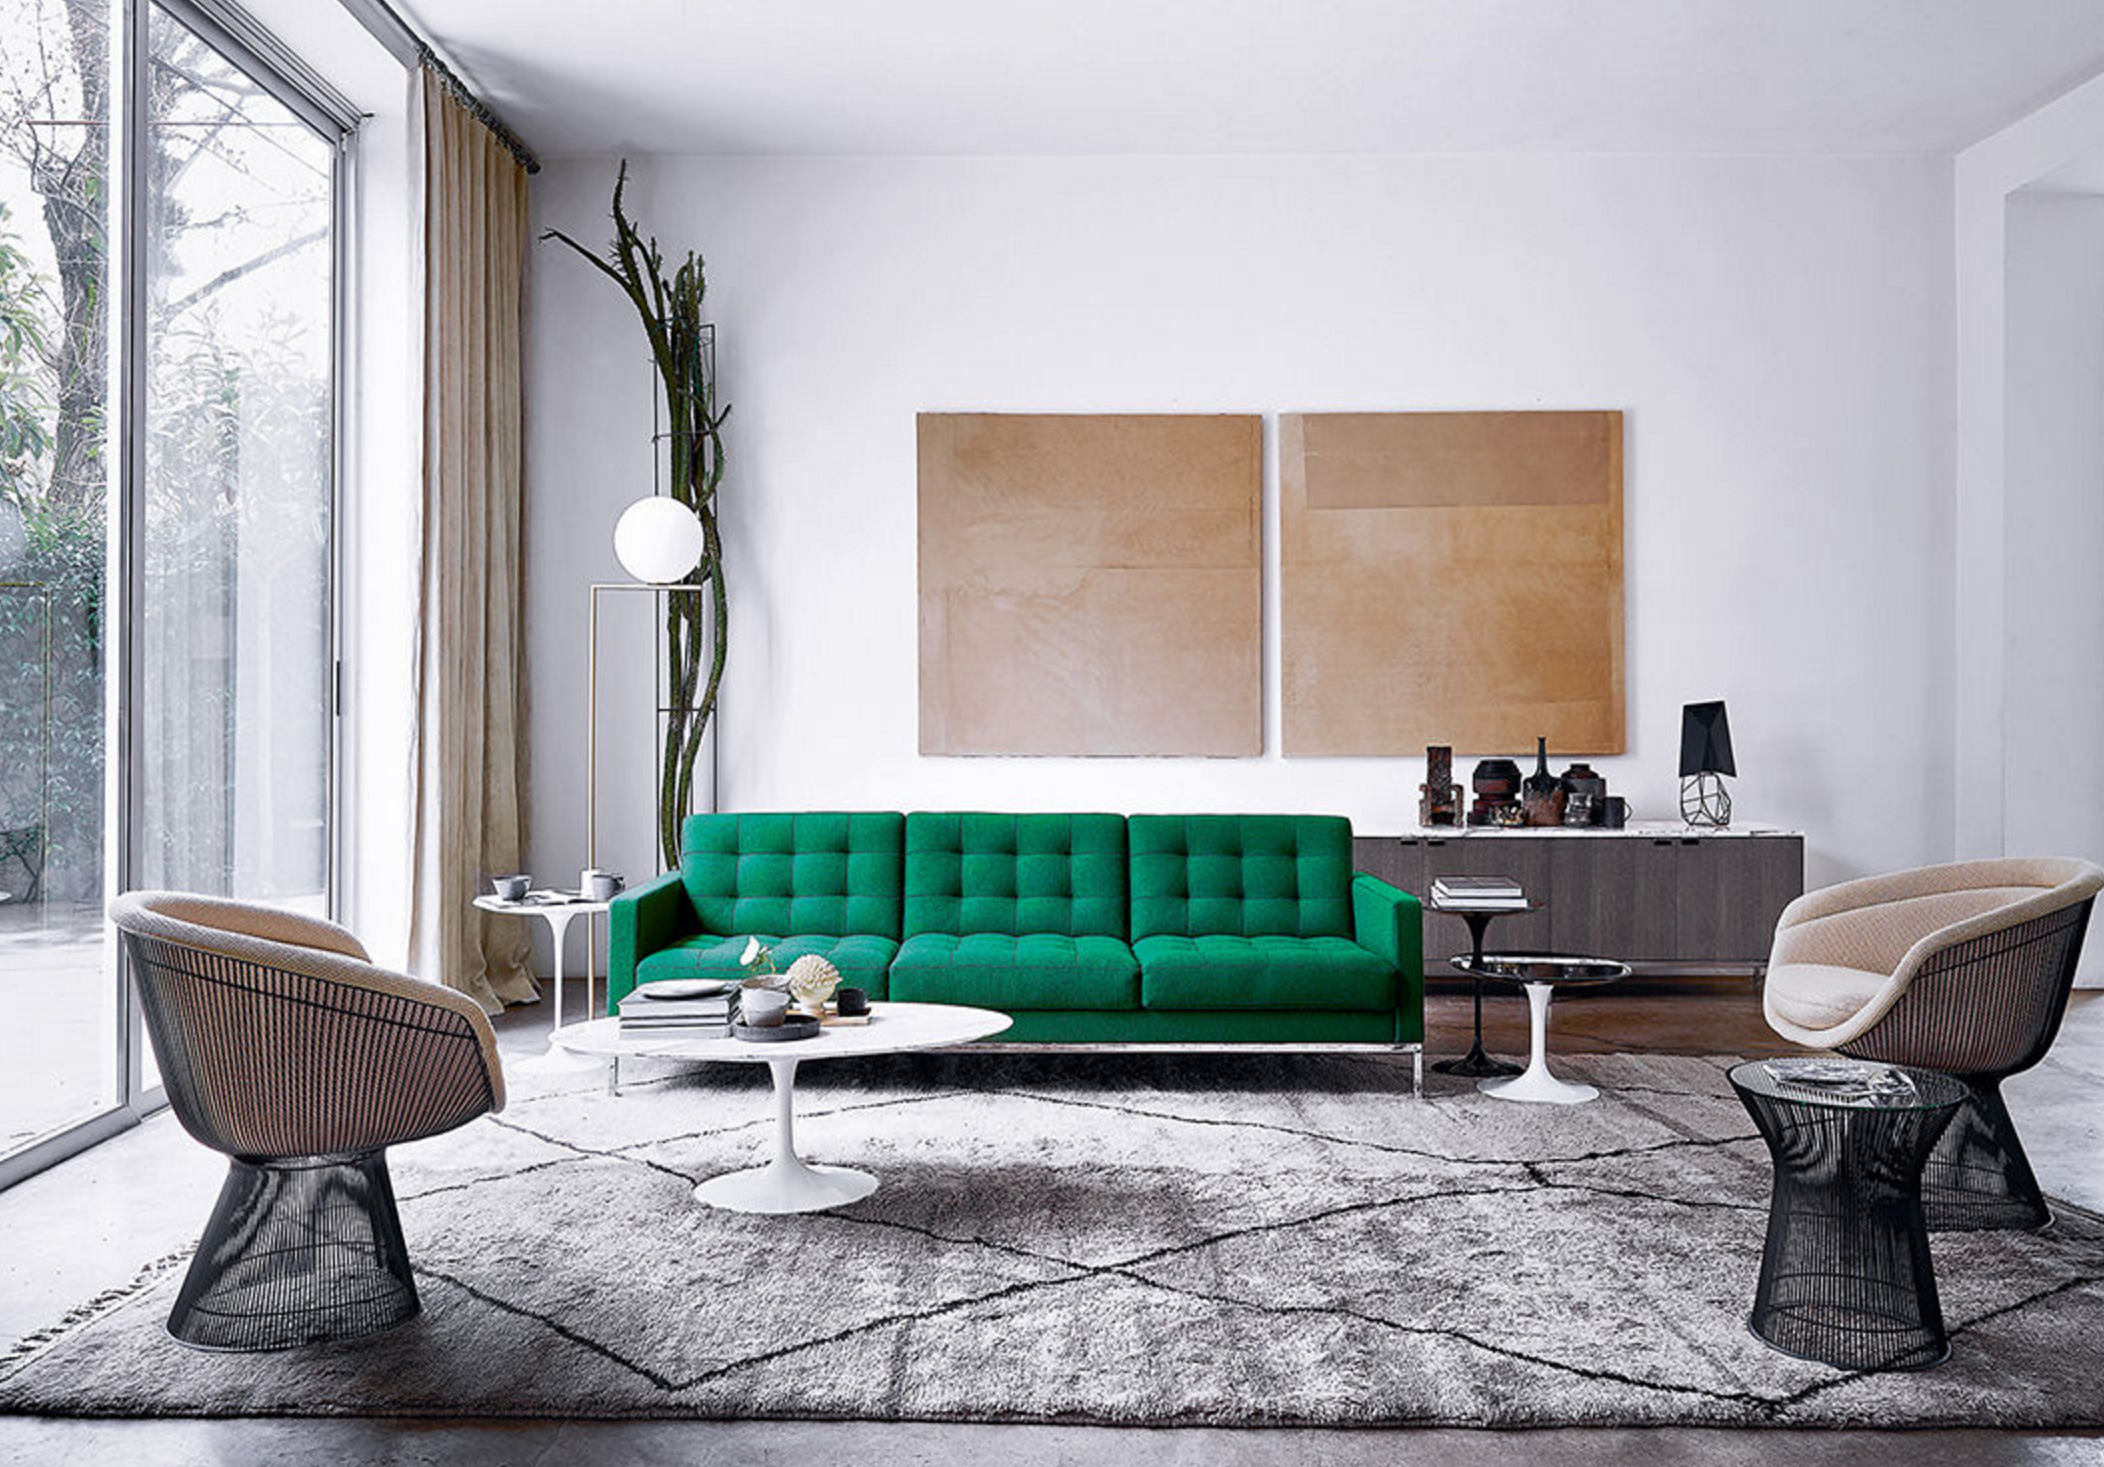 An Emerald Green Florence Knoll Sofa And A Pair Of Platner Lounge